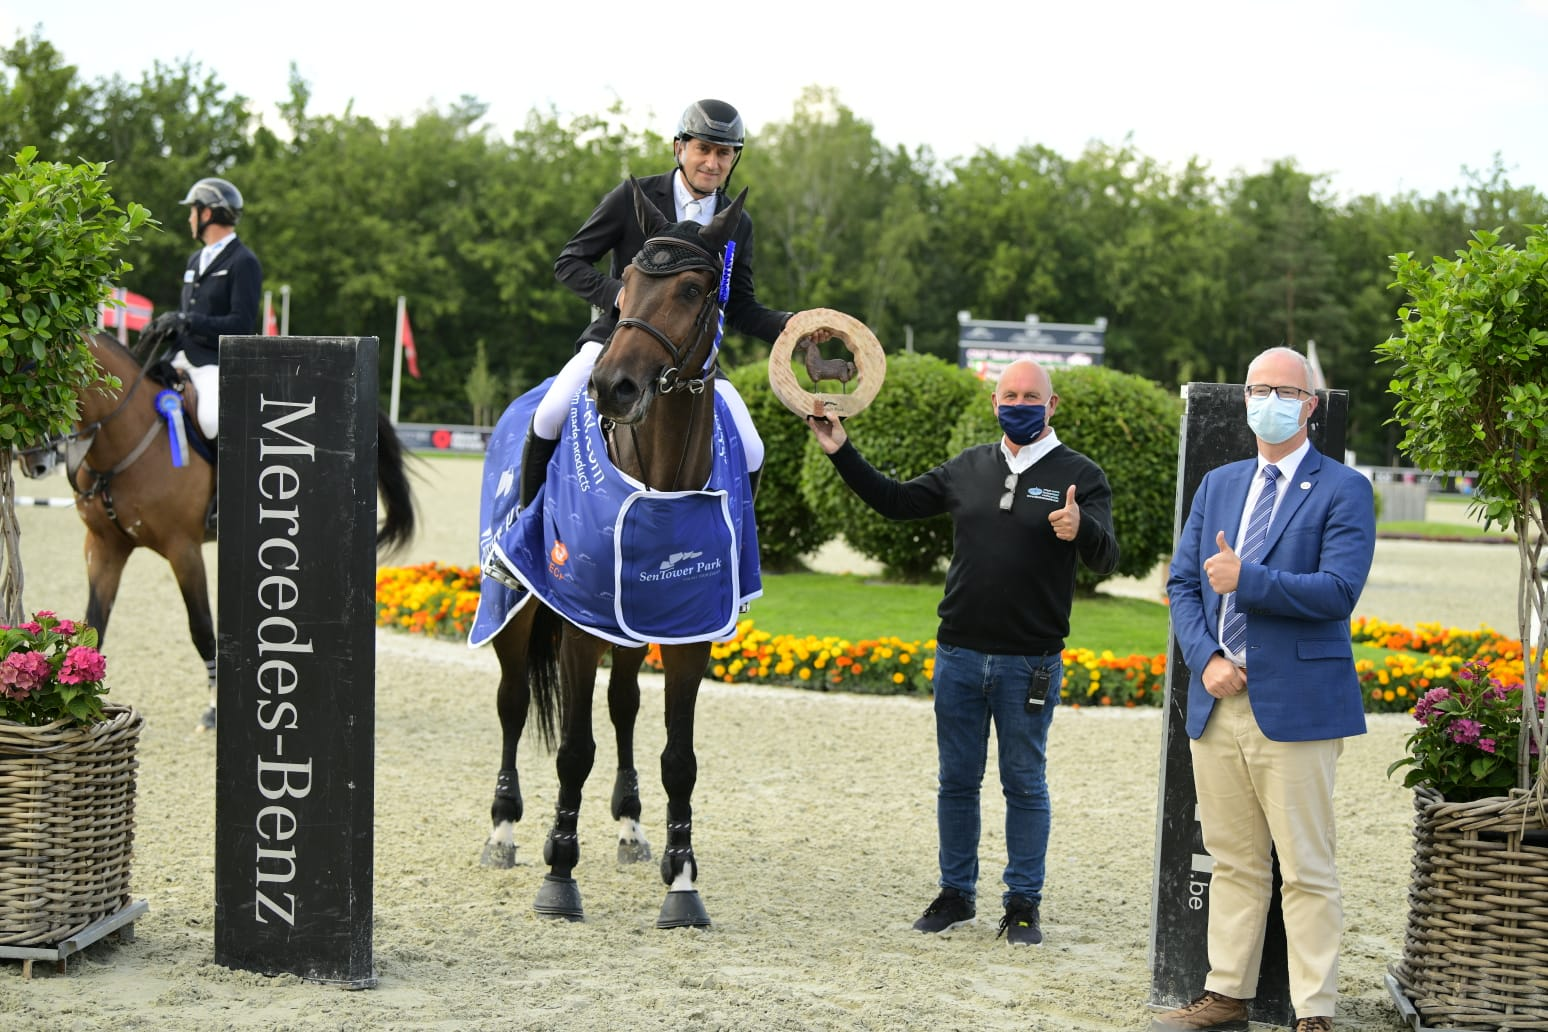 Bucci takes gold in the Longines Ranking Class Sentower Park